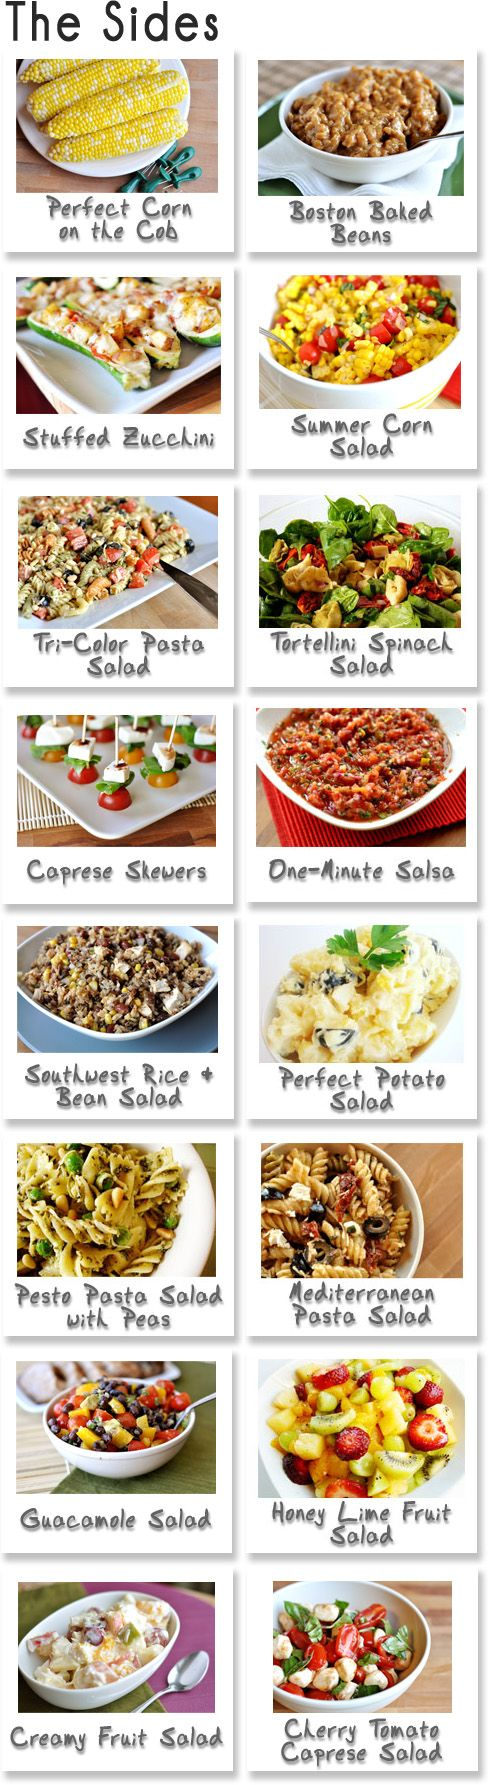 Side Dishes: Tasty Recipe, Summer Side Dishes, Sidedishes, Food, Side Dishes For Cookouts, Side Recipe, Bbq Side, Cookouts Side, Summer Cookouts